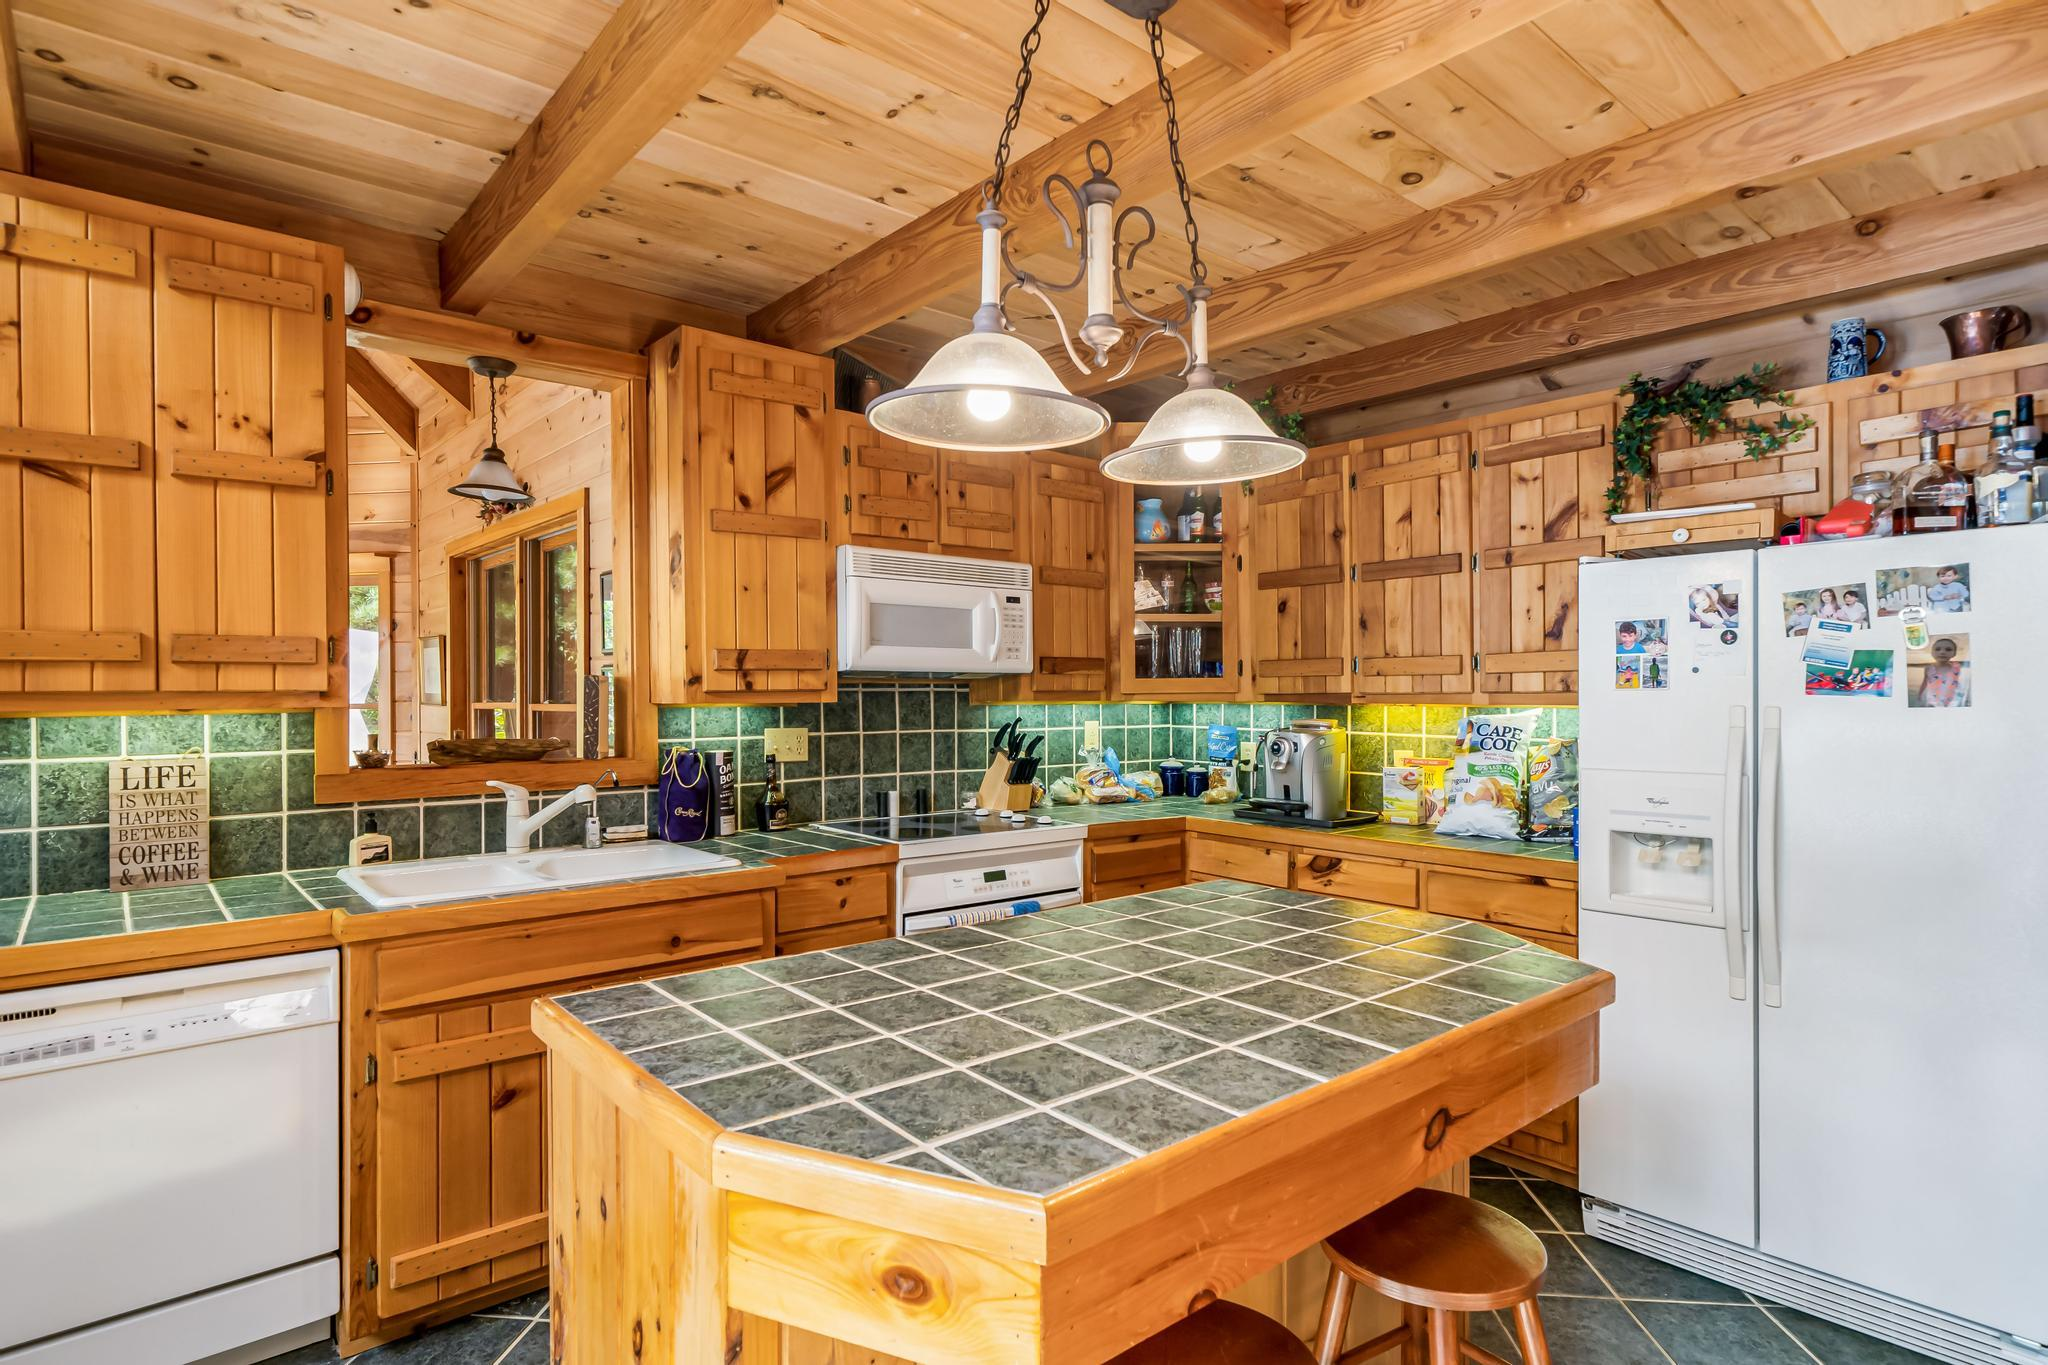 709 cove edge dr (46 of 72)